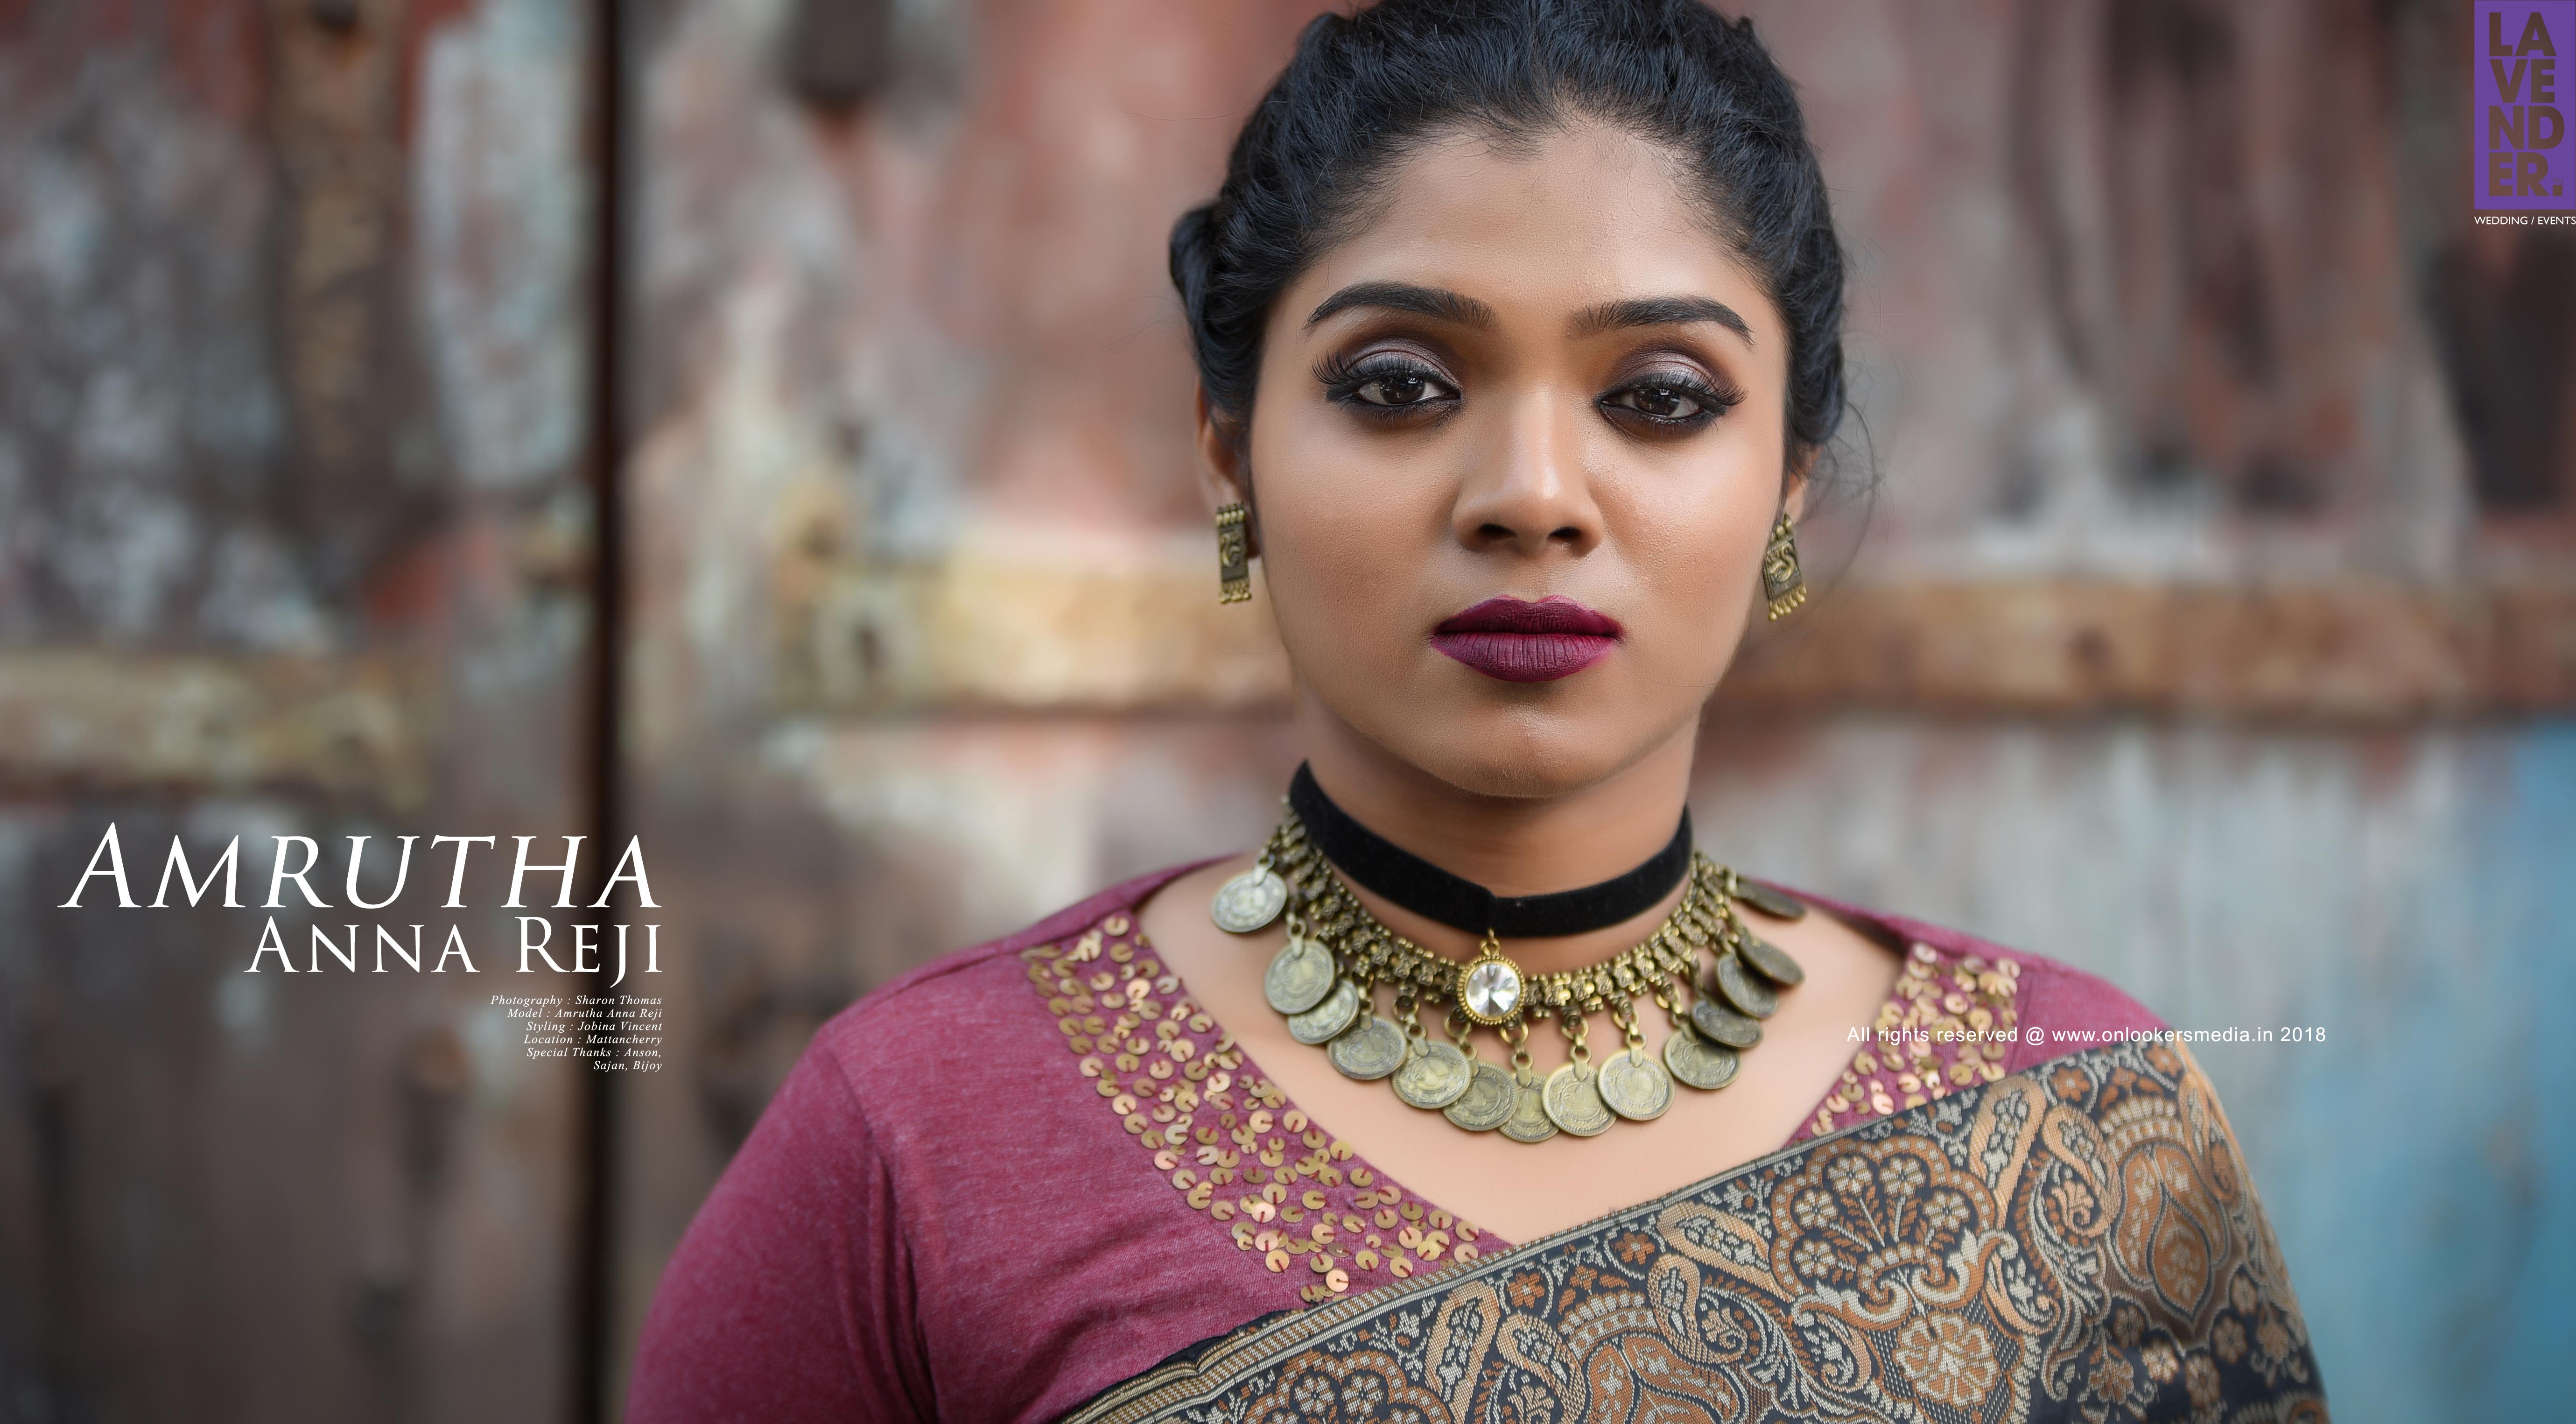 http://onlookersmedia.in/wp-content/uploads/2018/03/amrutha-anna-reji-make-over-stills-images-photos-20.jpg